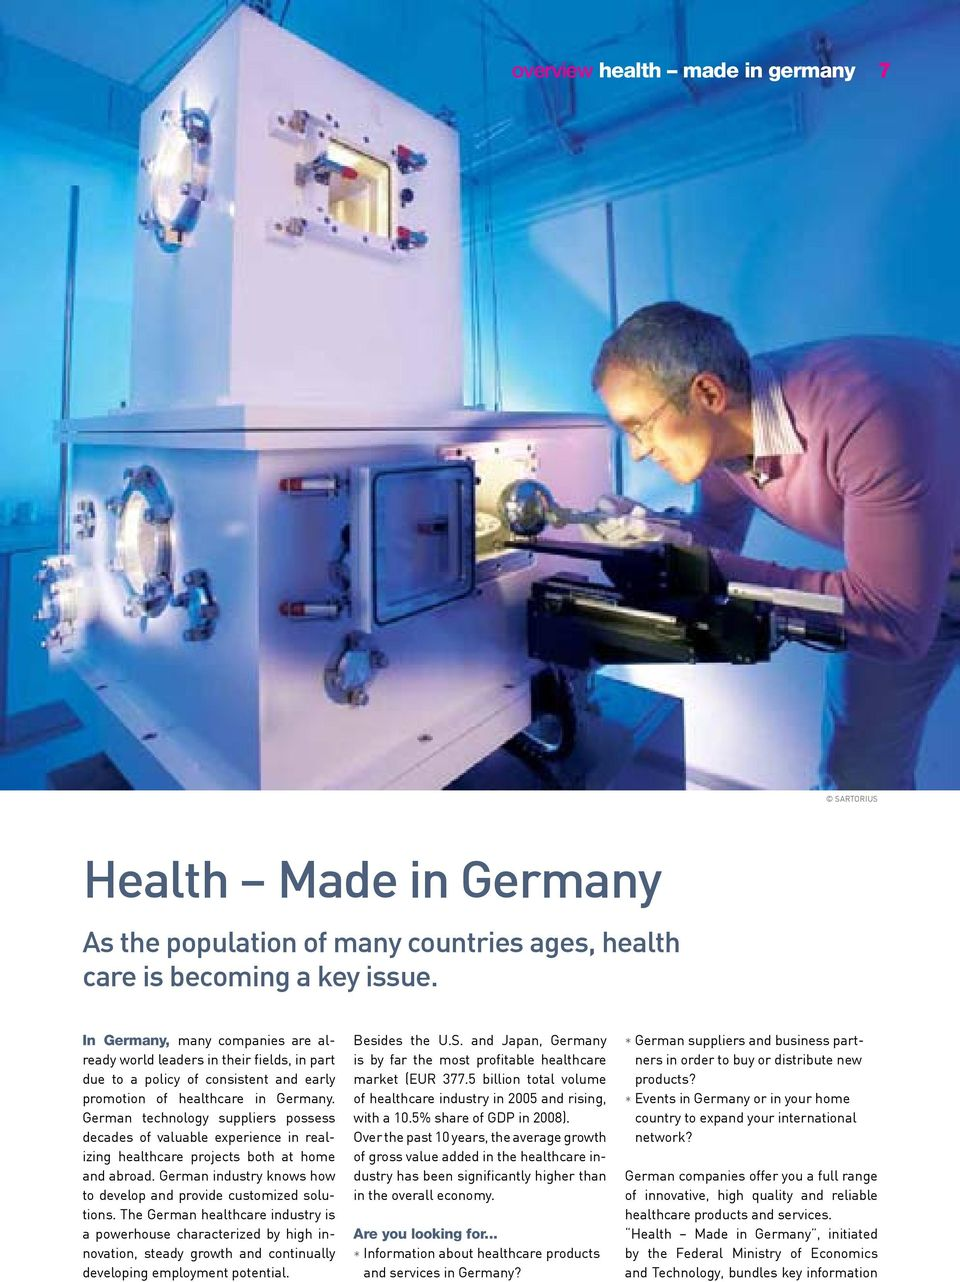 german technology suppliers possess decades of valuable experience in realizing healthcare projects both at home and abroad. german industry knows how to develop and provide customized solutions.